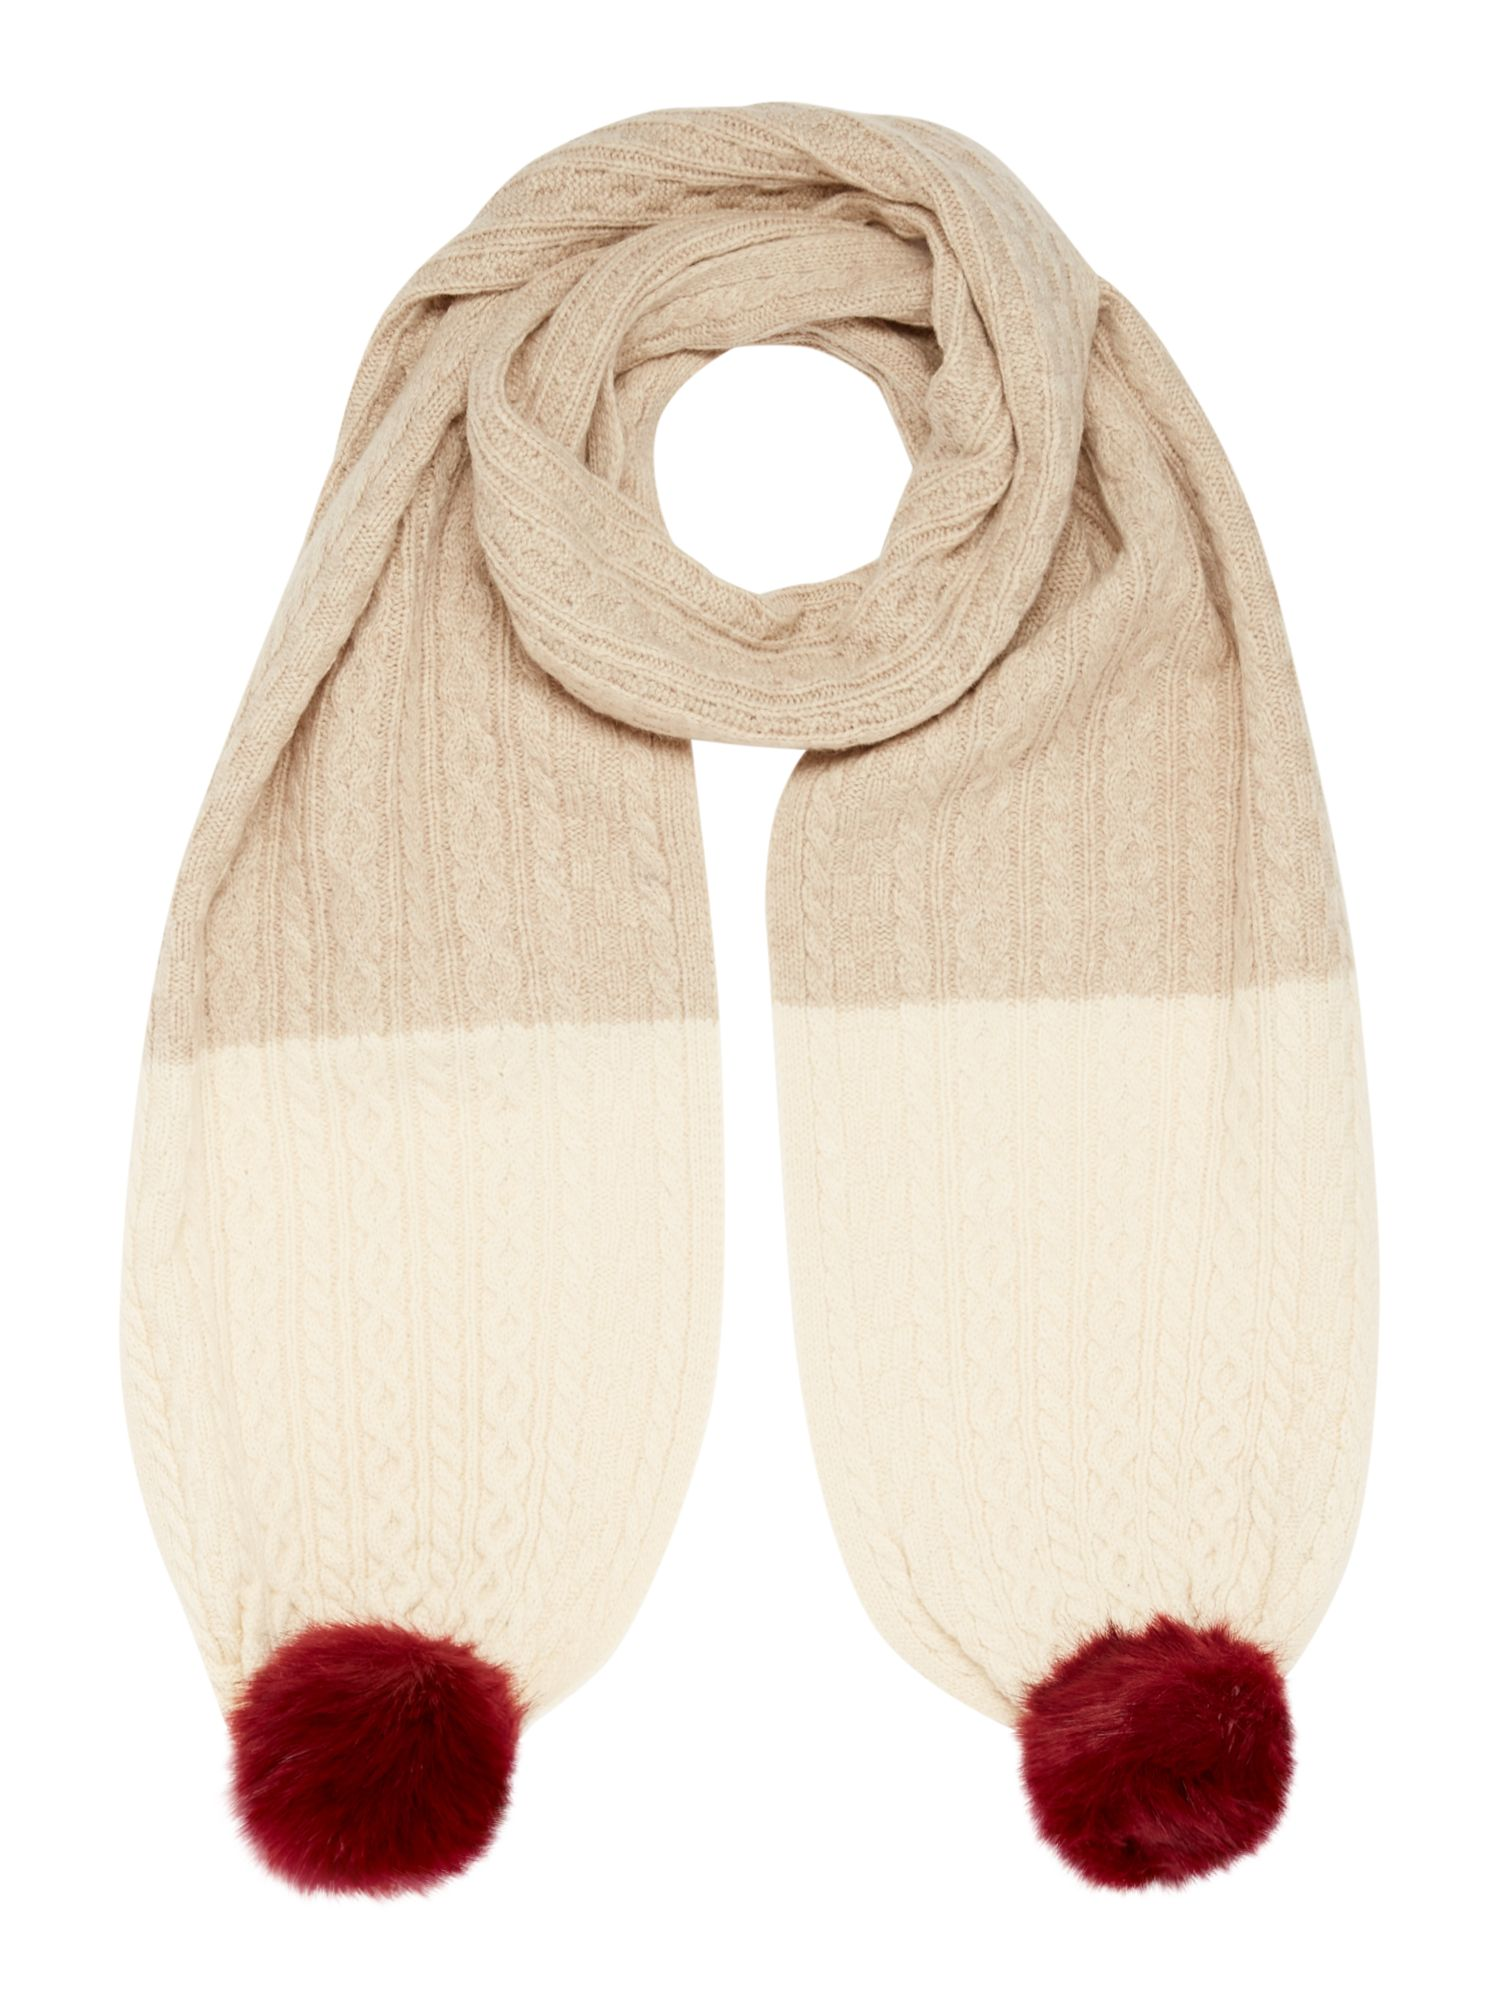 Dents Contrast knitted scarf, Oatmeal